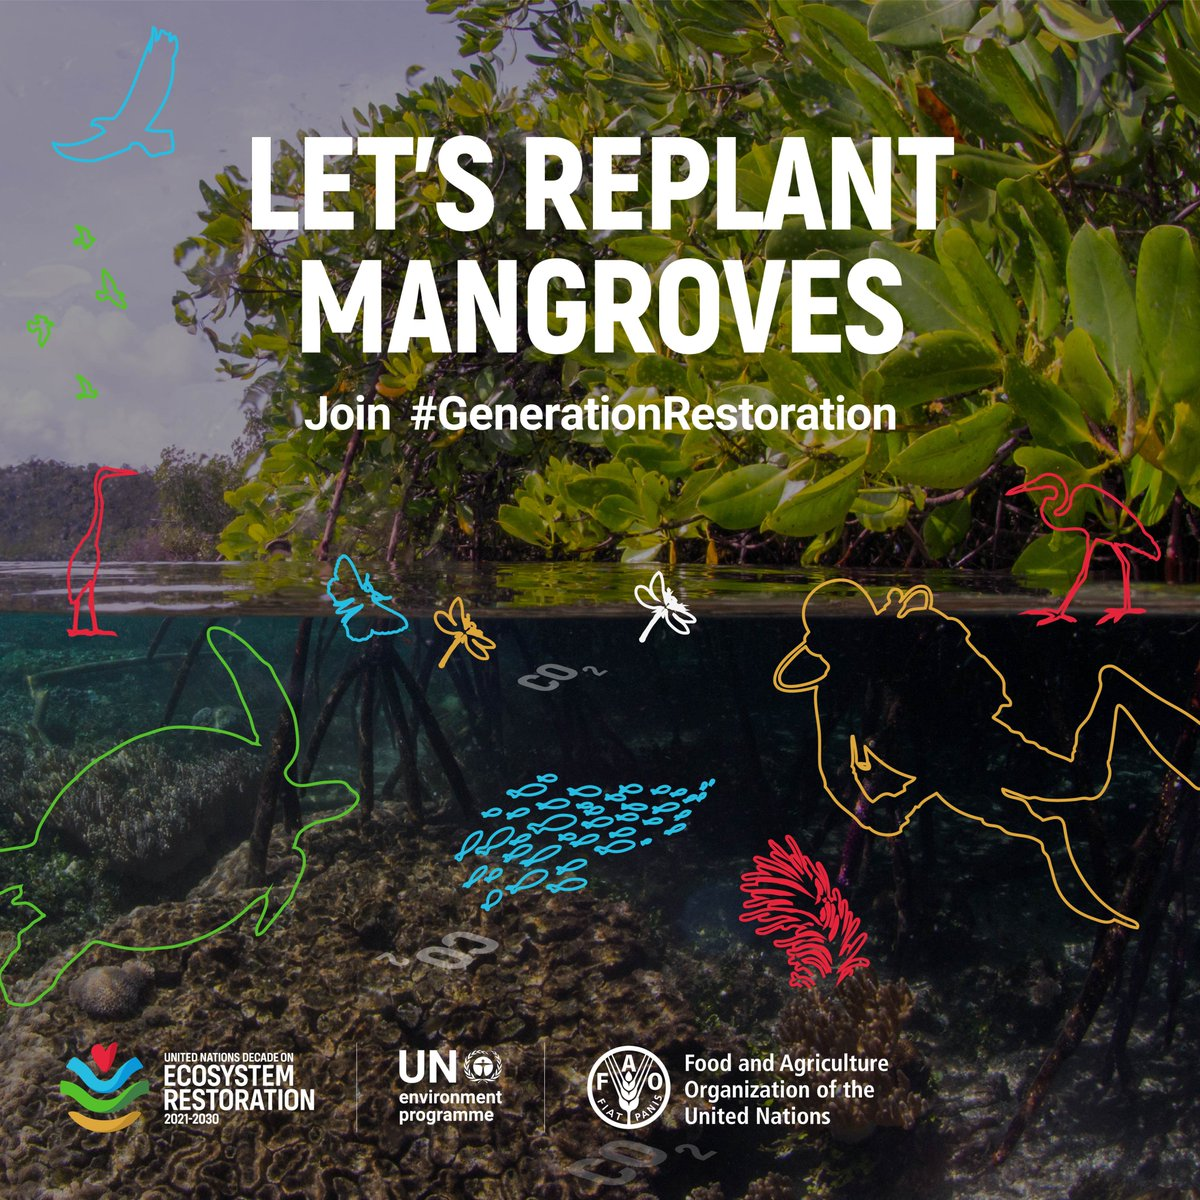 ✅Restoring mangroves, the 'Guardians of the Coast', can make ecosystems & communities more resilient to environmental changes.  What is your government doing to restore mangroves – in your county or abroad? #ActNow for #GenerationRestoration: https://t.co/83FsFRFqsT #MangroveDay